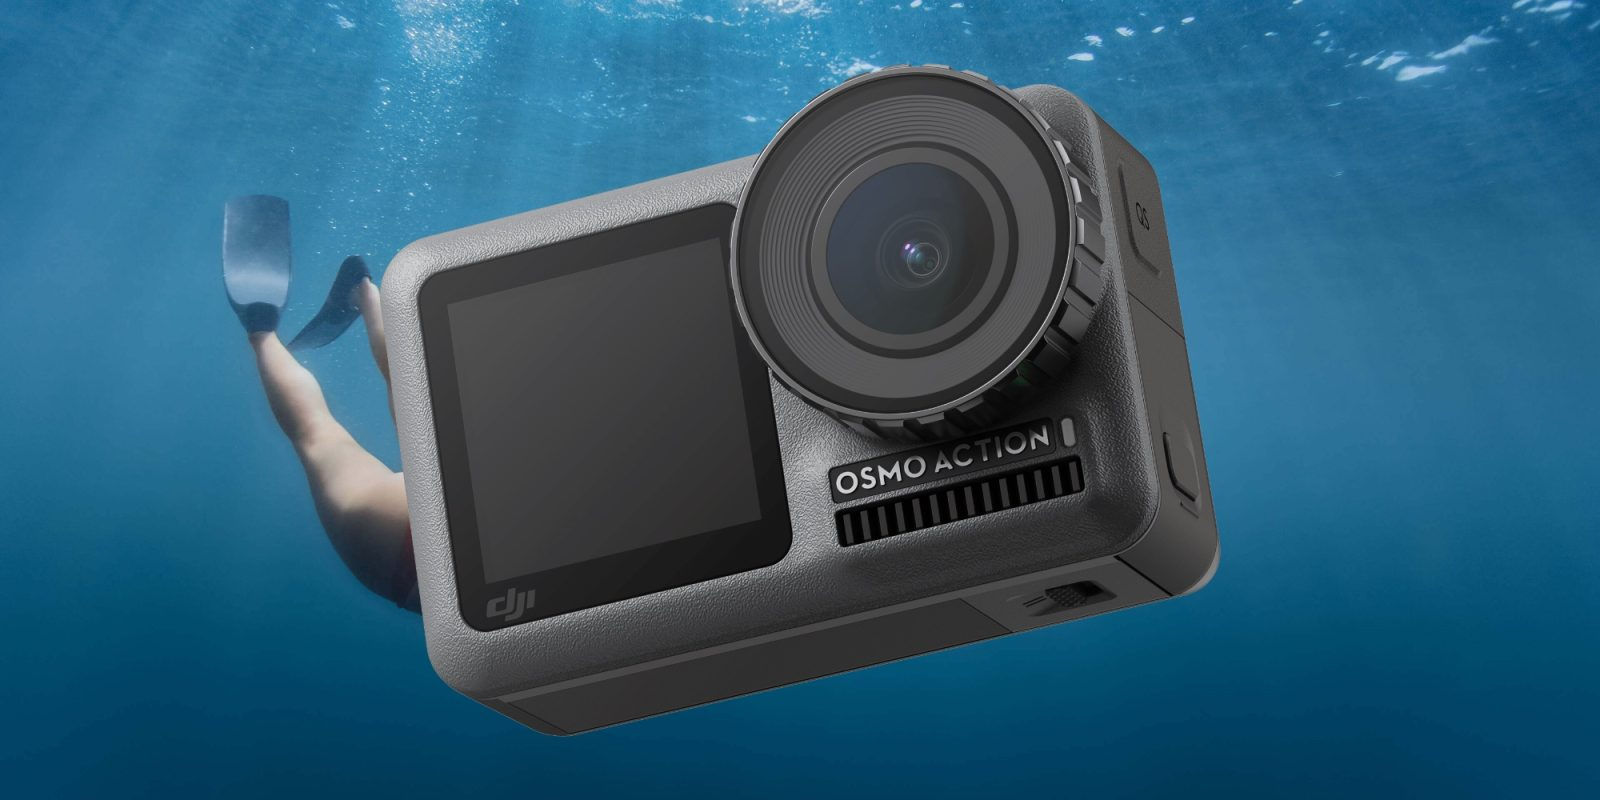 DJI's 4K60 Osmo Action Camera hits new low of $246.50 (Reg. $319)